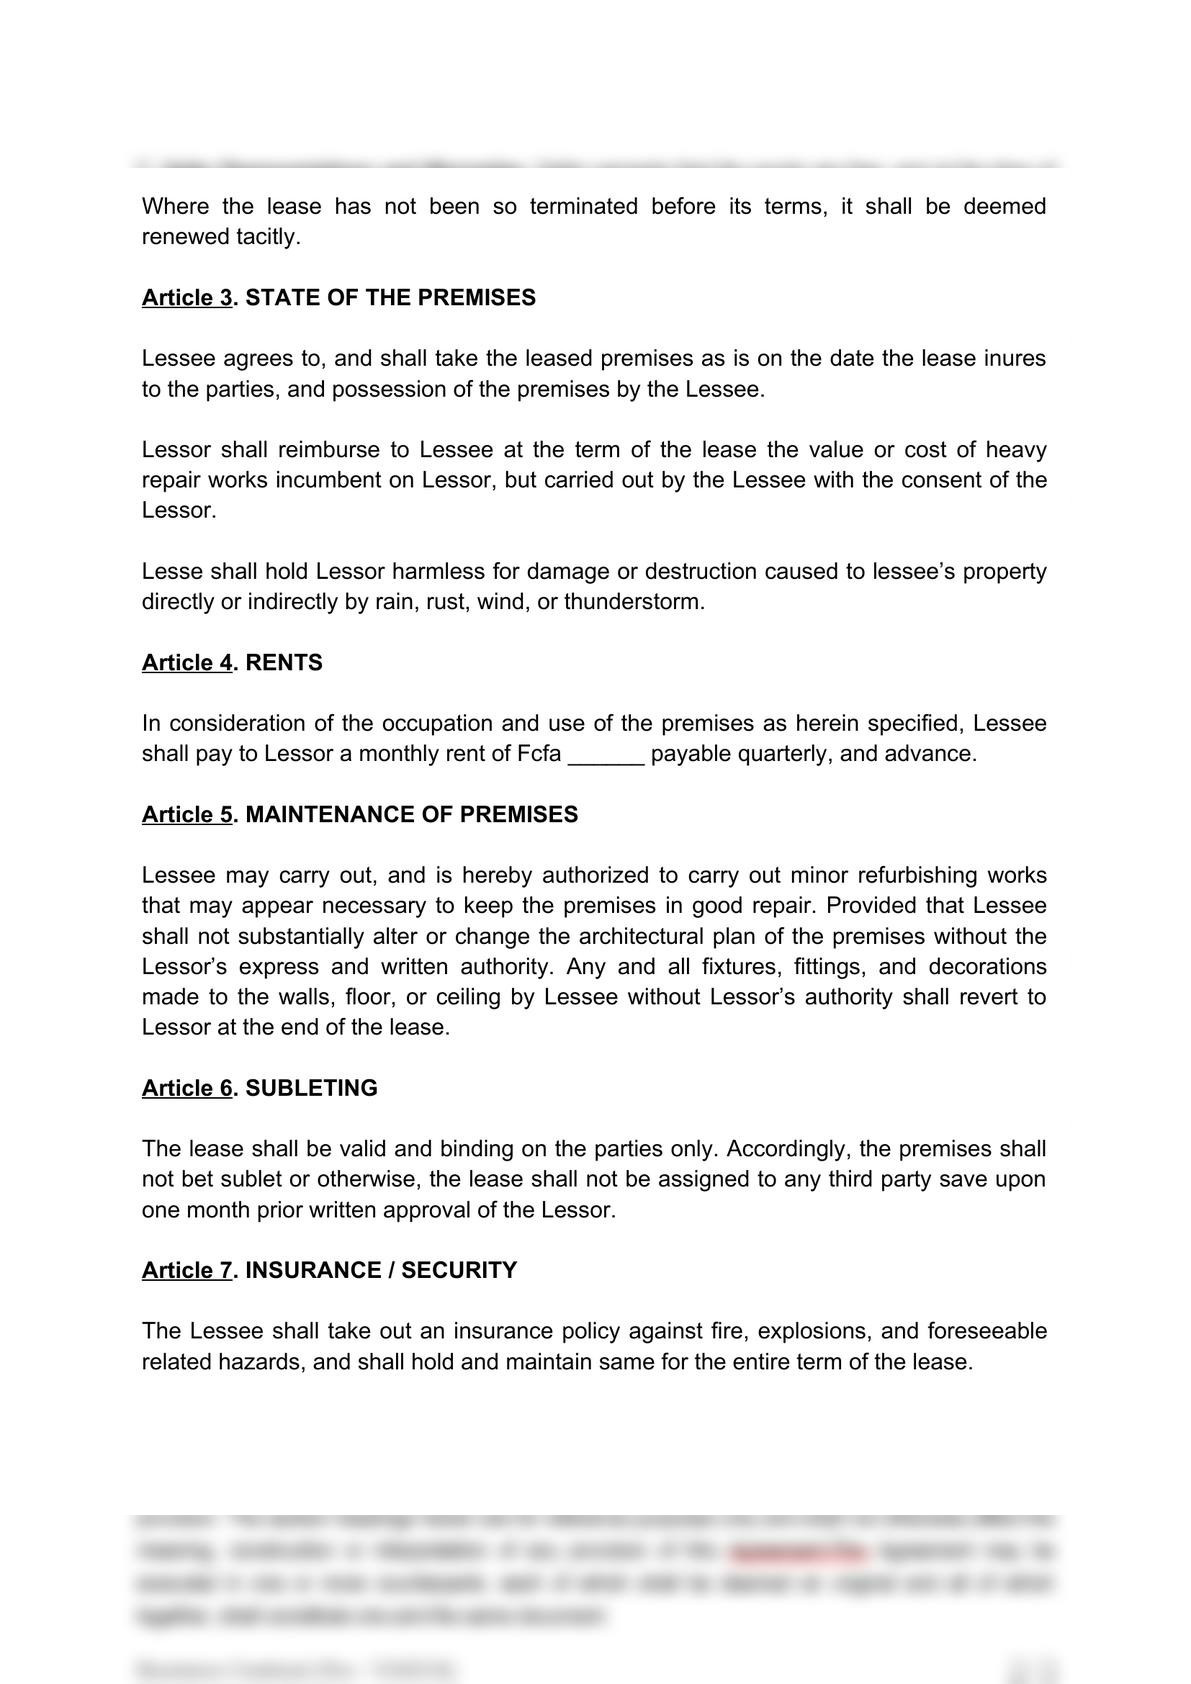 lease agreement in cameroon-1